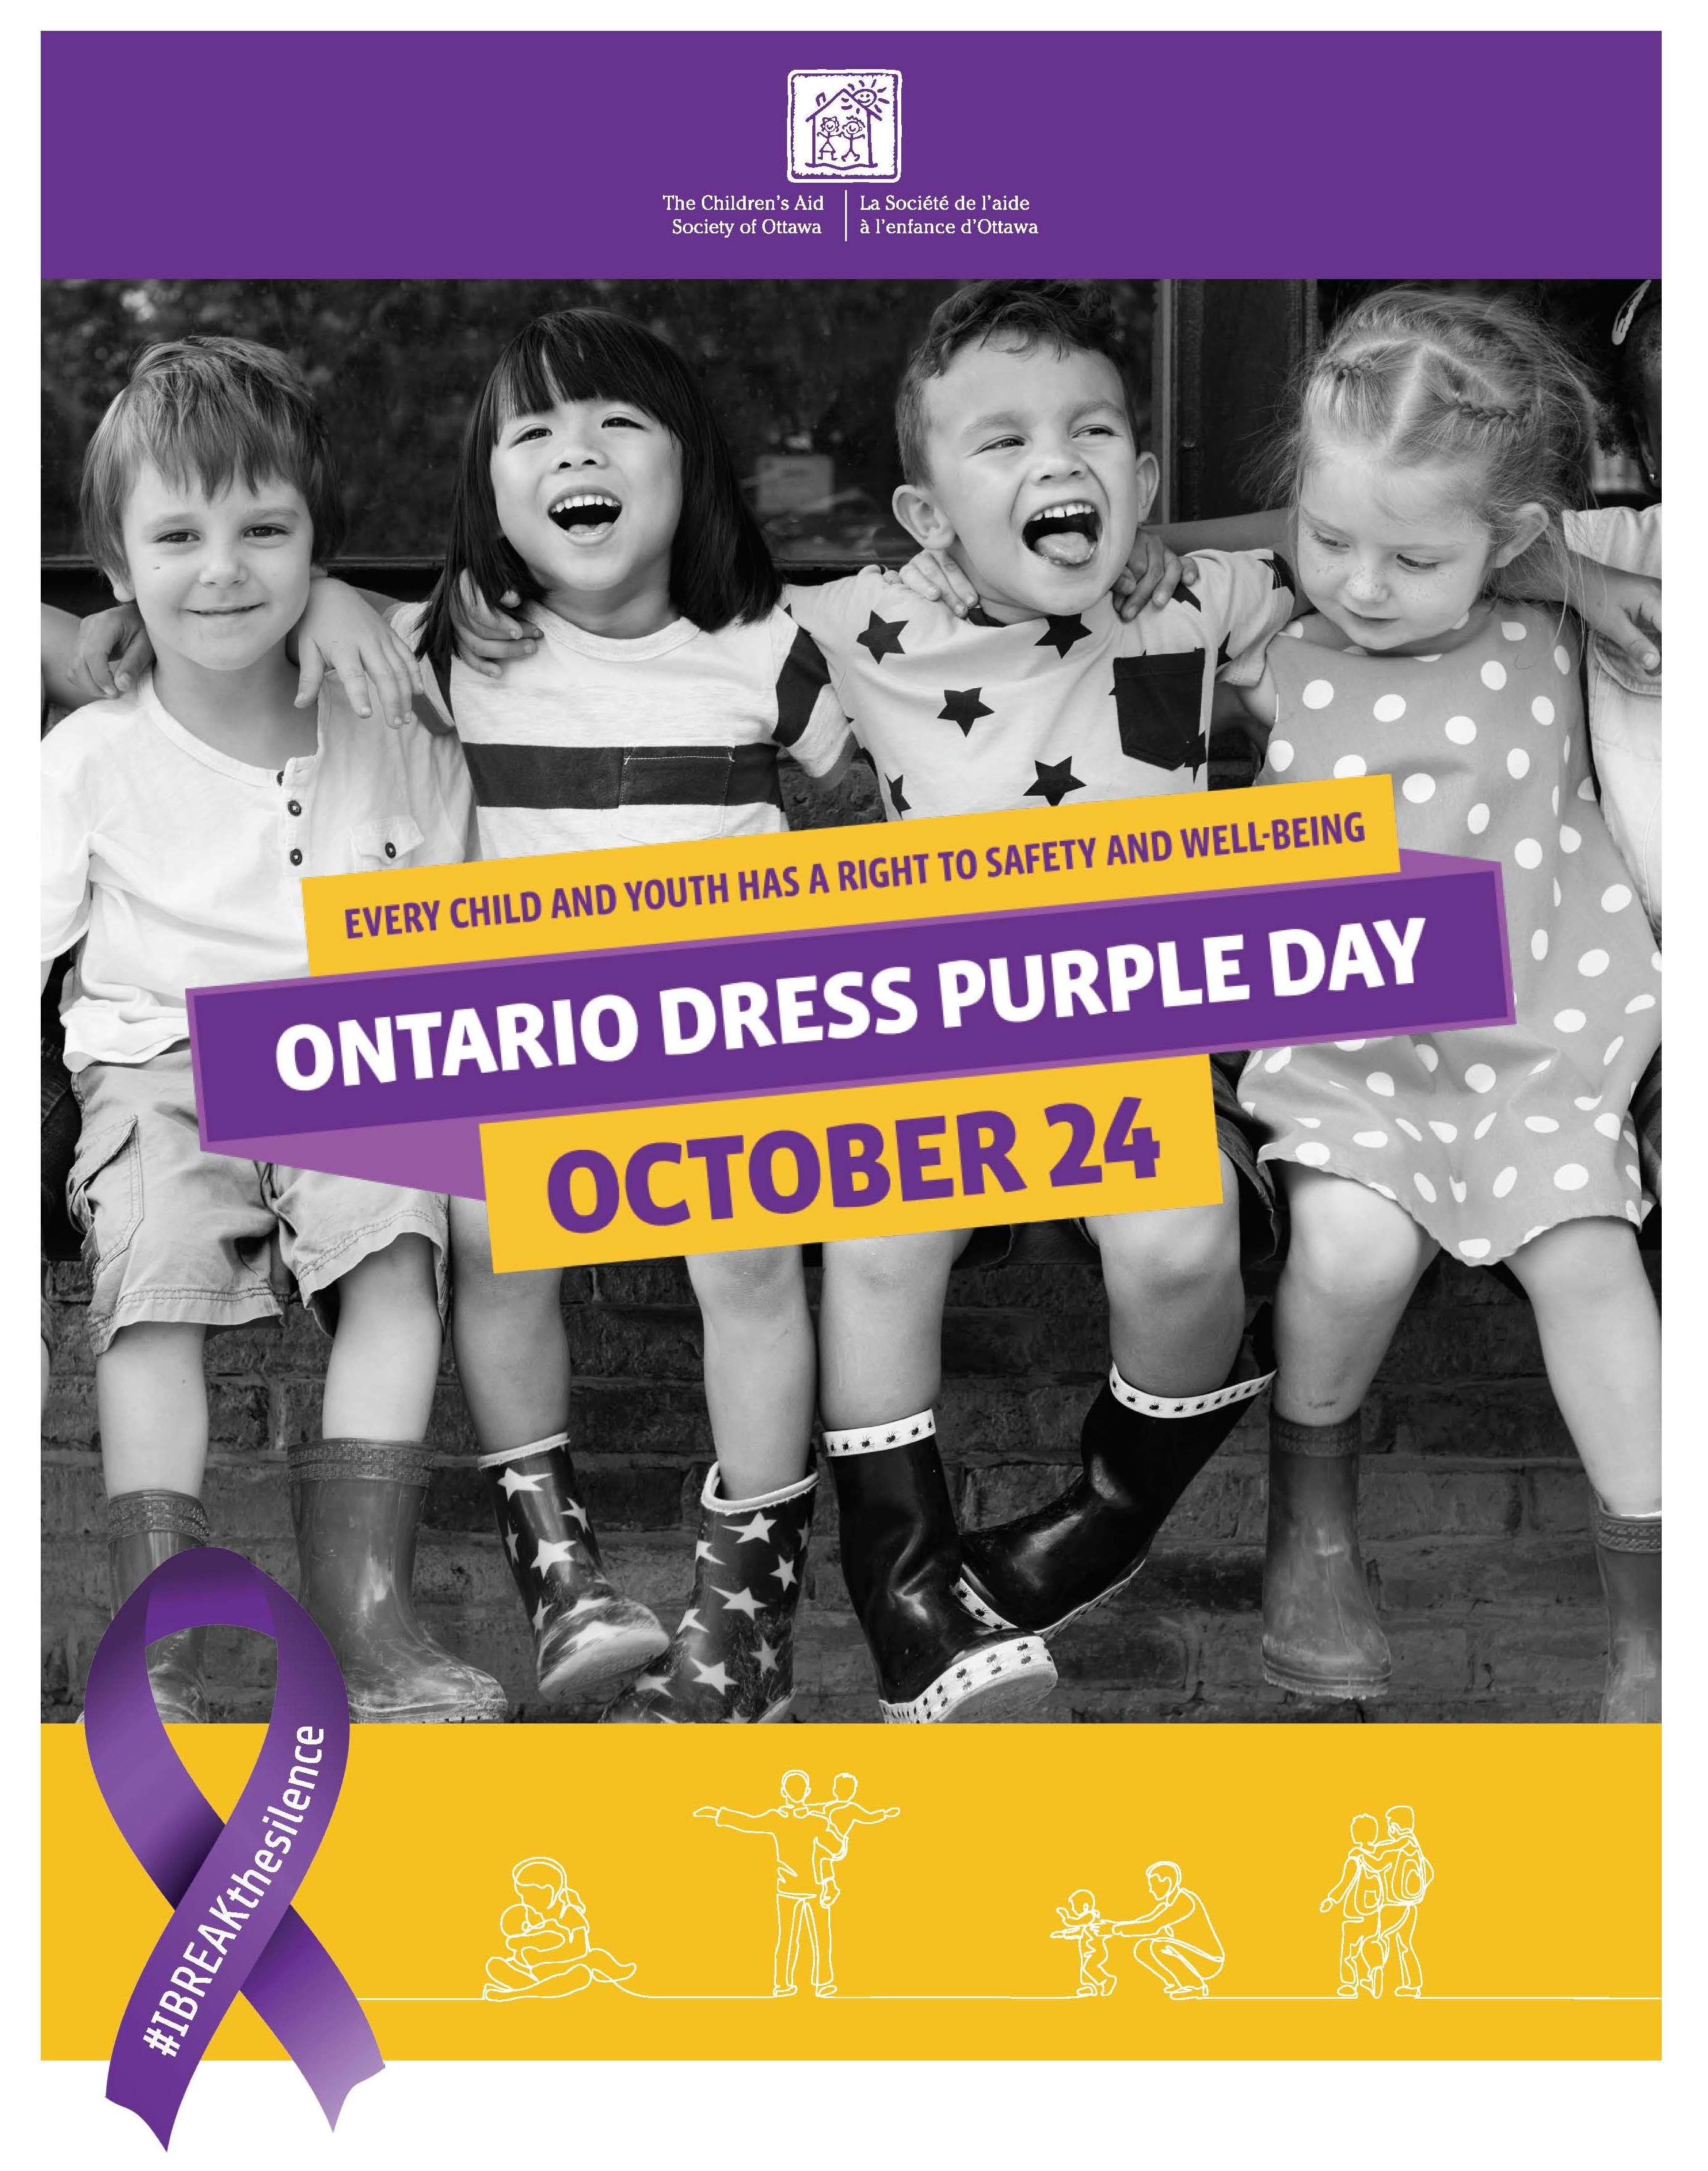 Orleans Star_Ontario Dress Purple Day 2018_Page_1